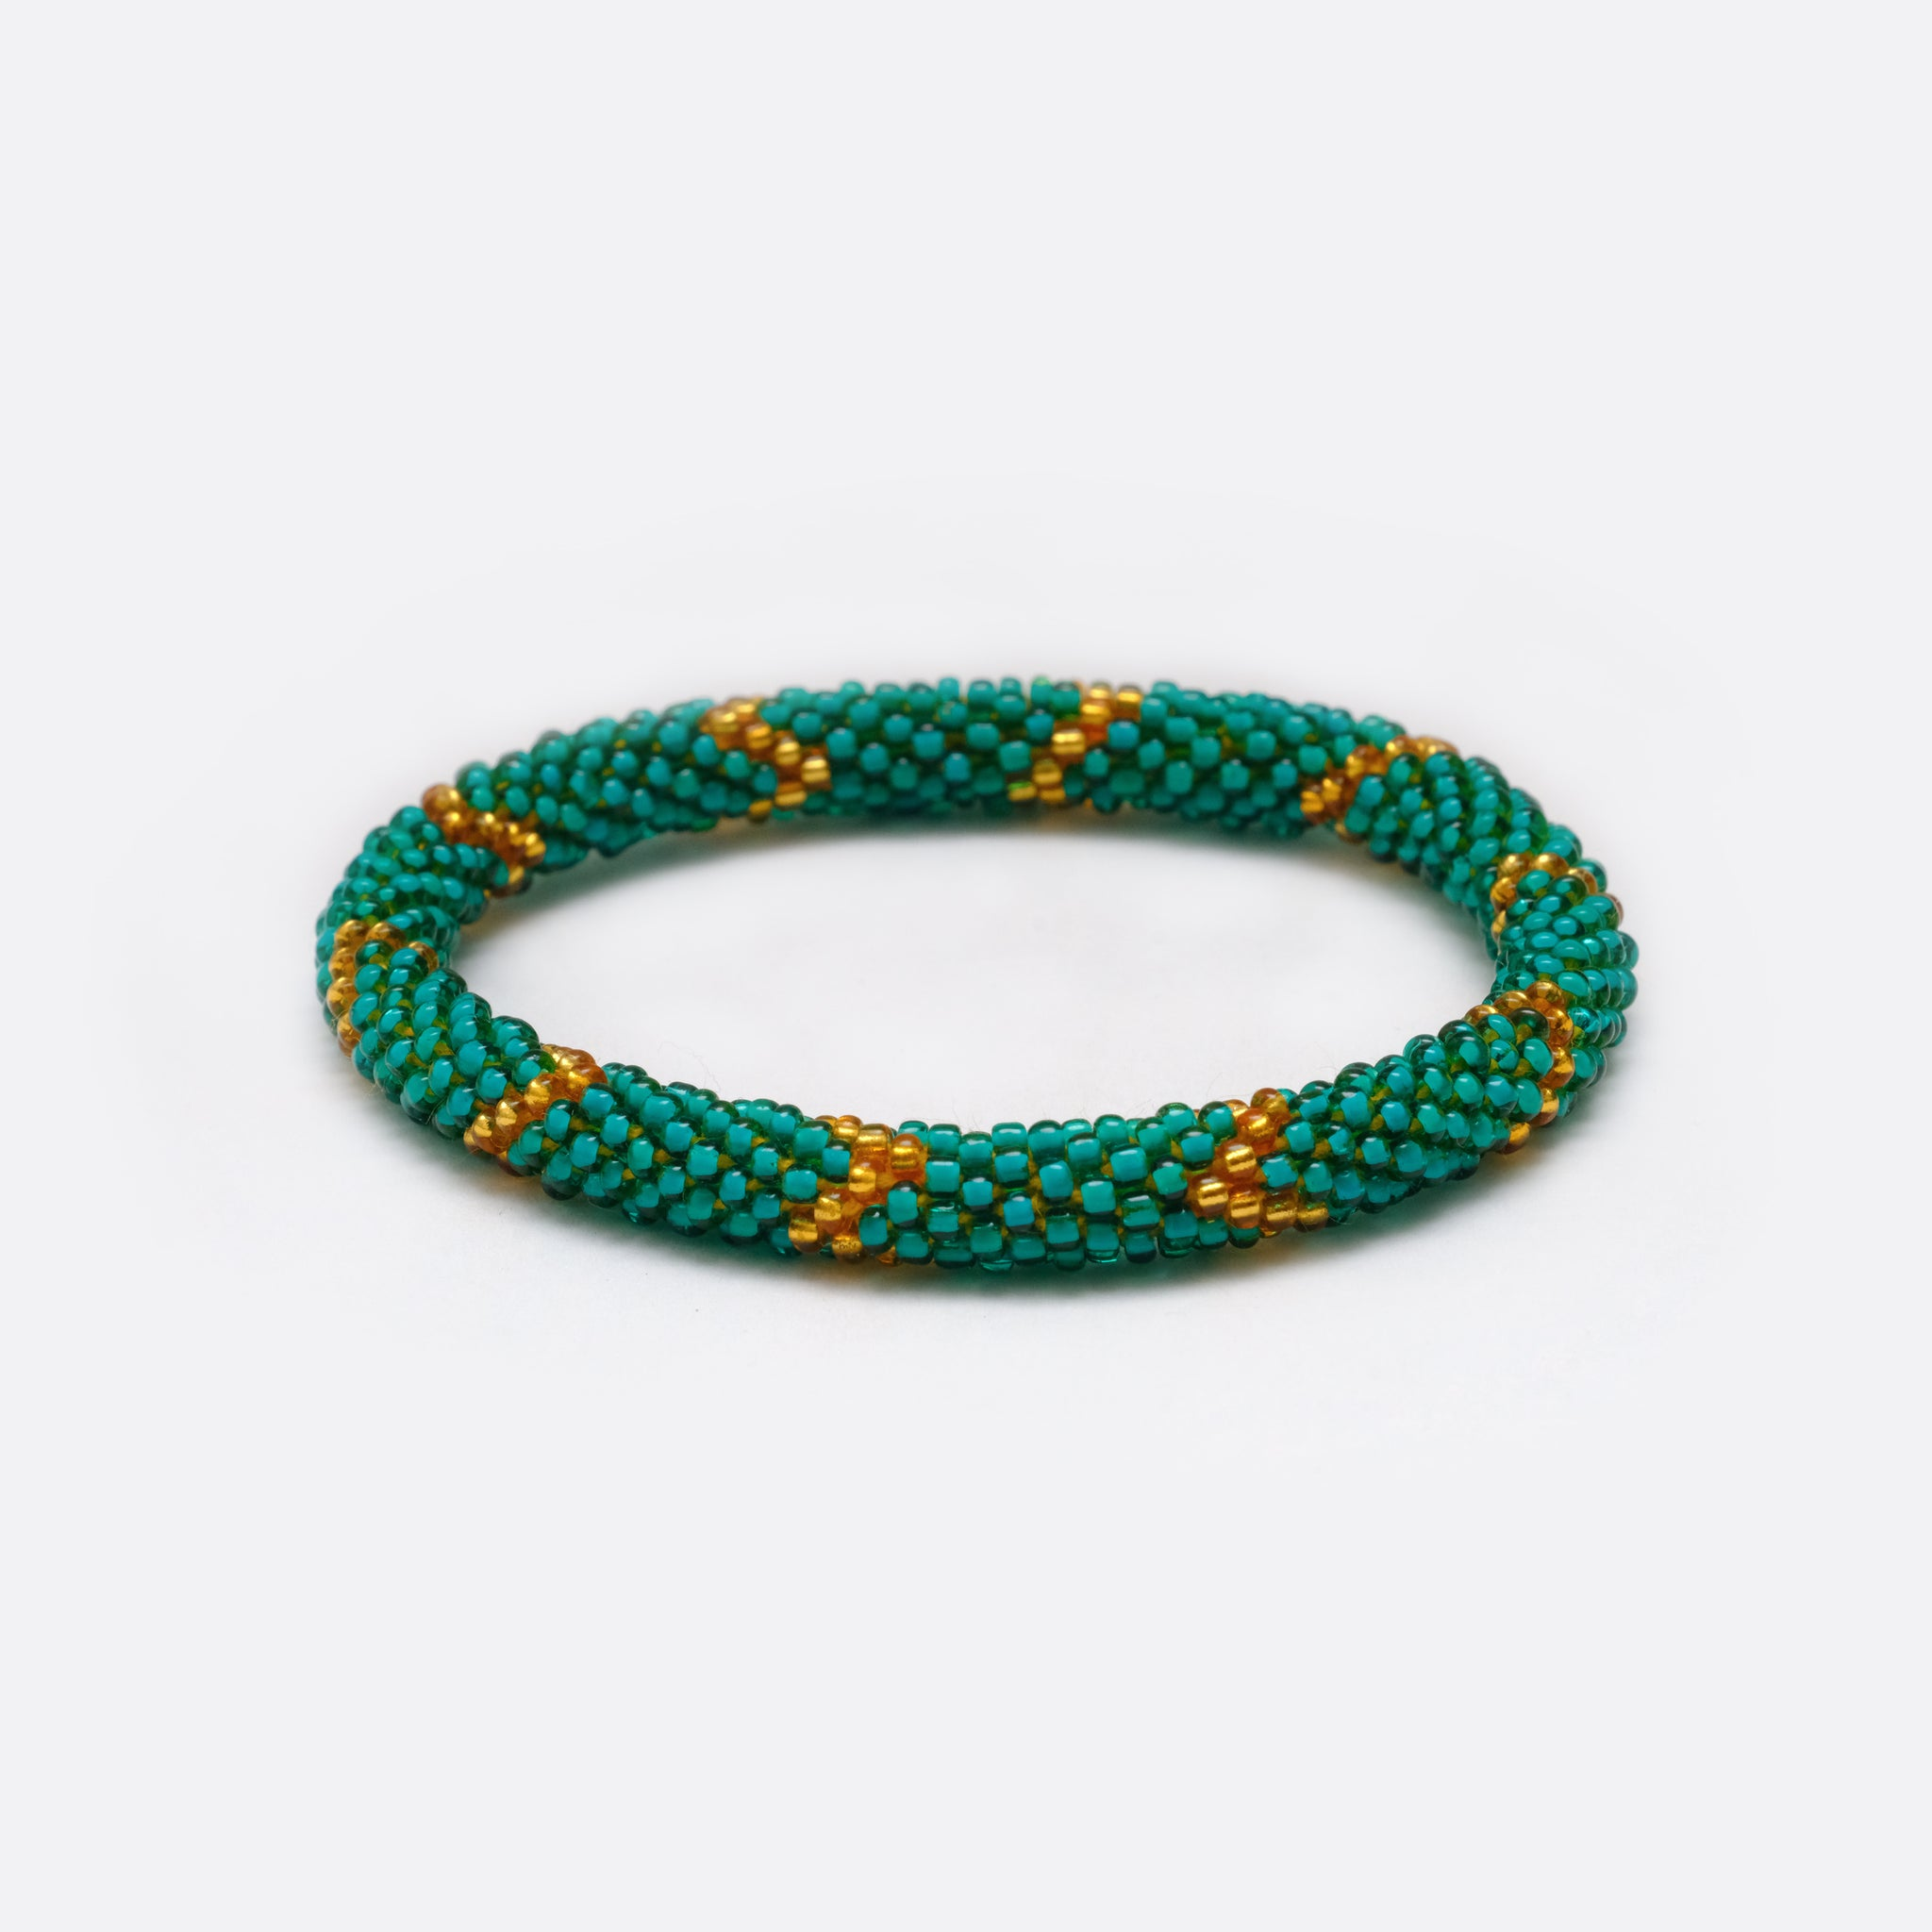 Beaded Bracelet - Shiny Green & Golden Flash